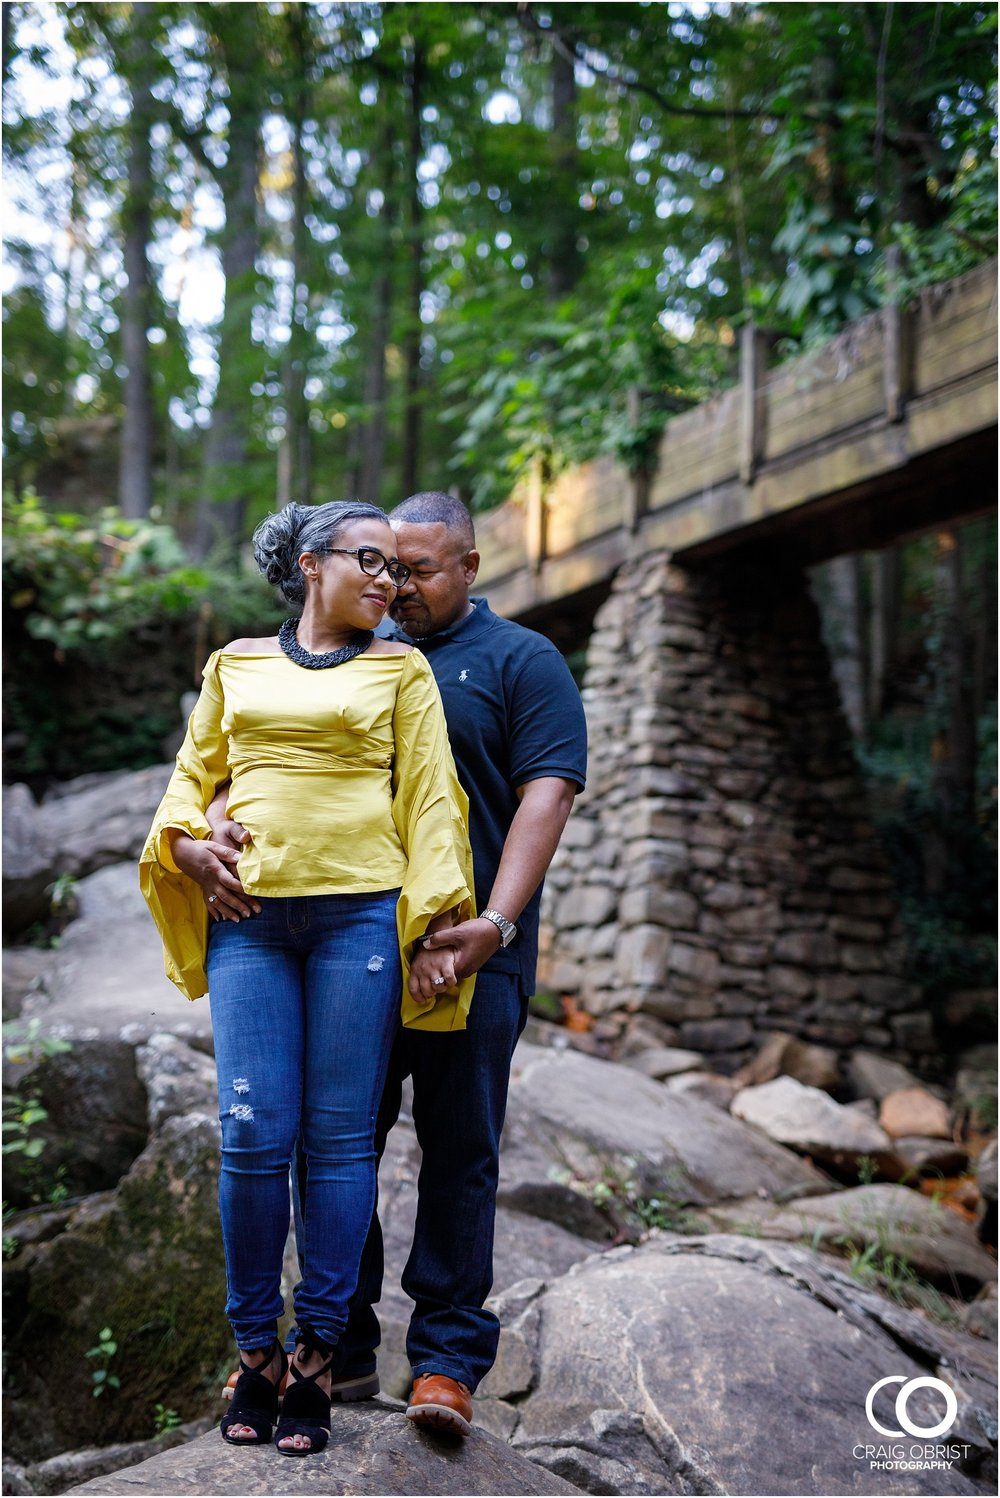 Life University Waterfall Marietta Square Engagment Portraits_0004.jpg